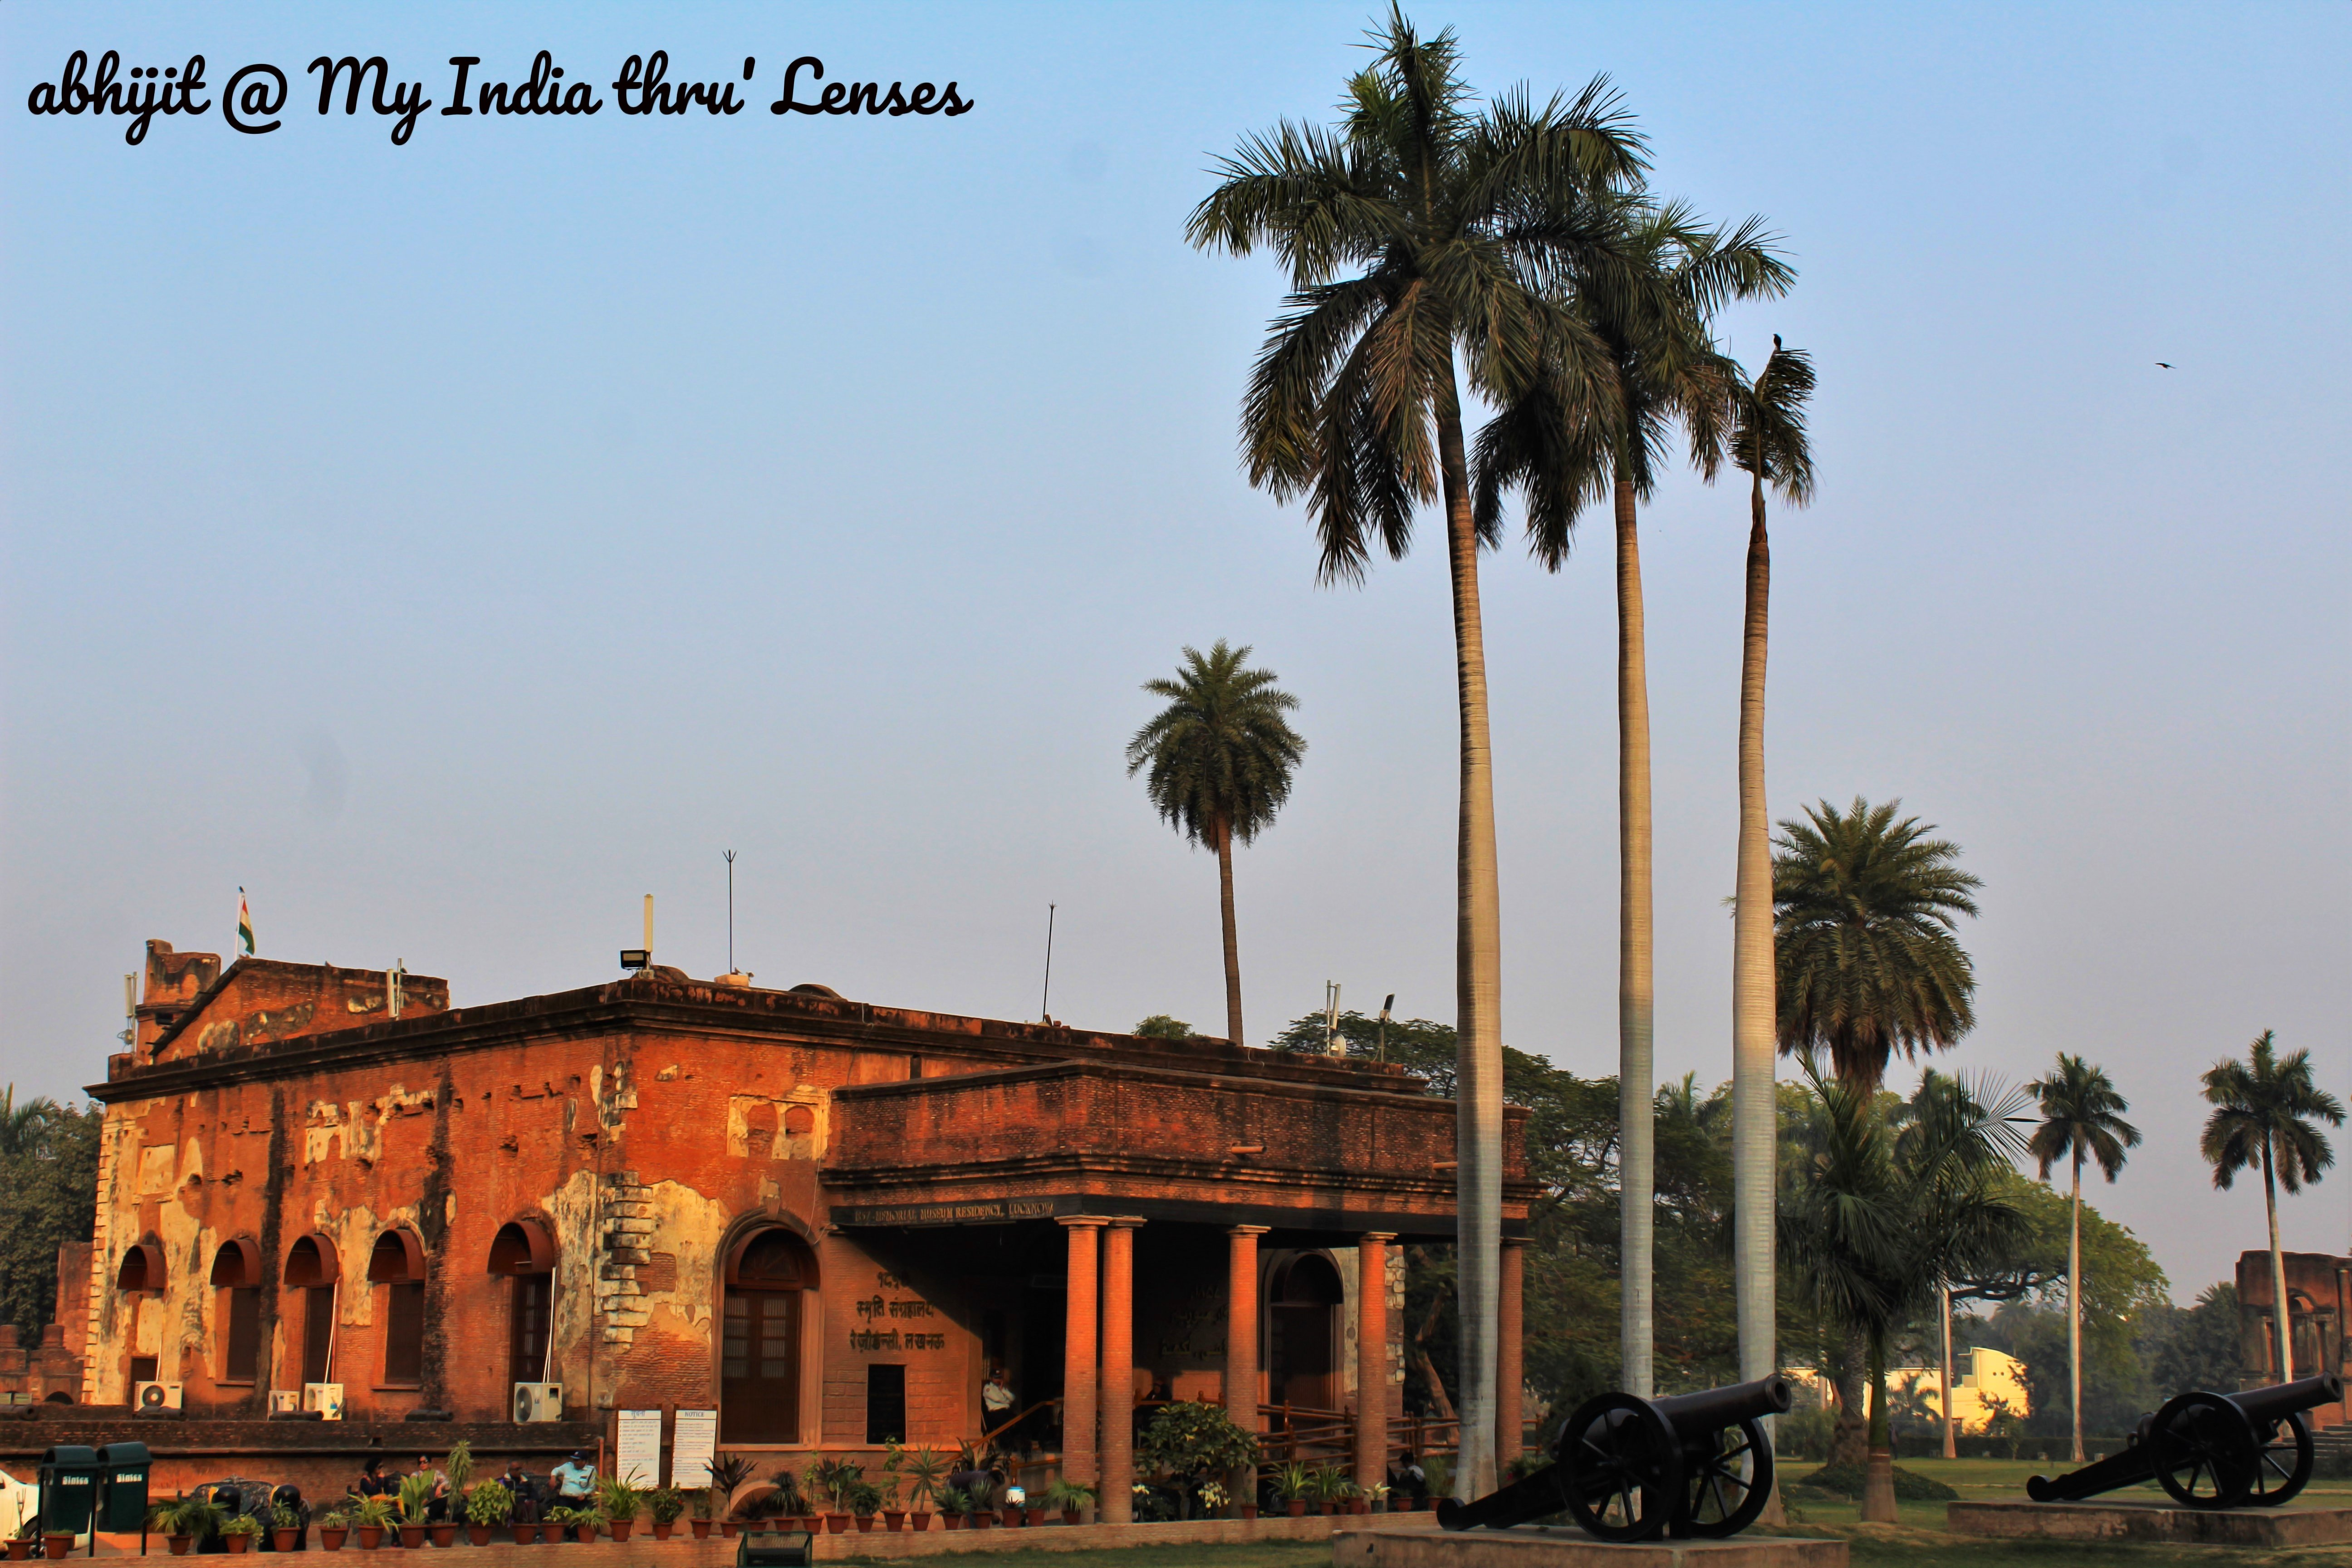 The British Residency at Lucknow